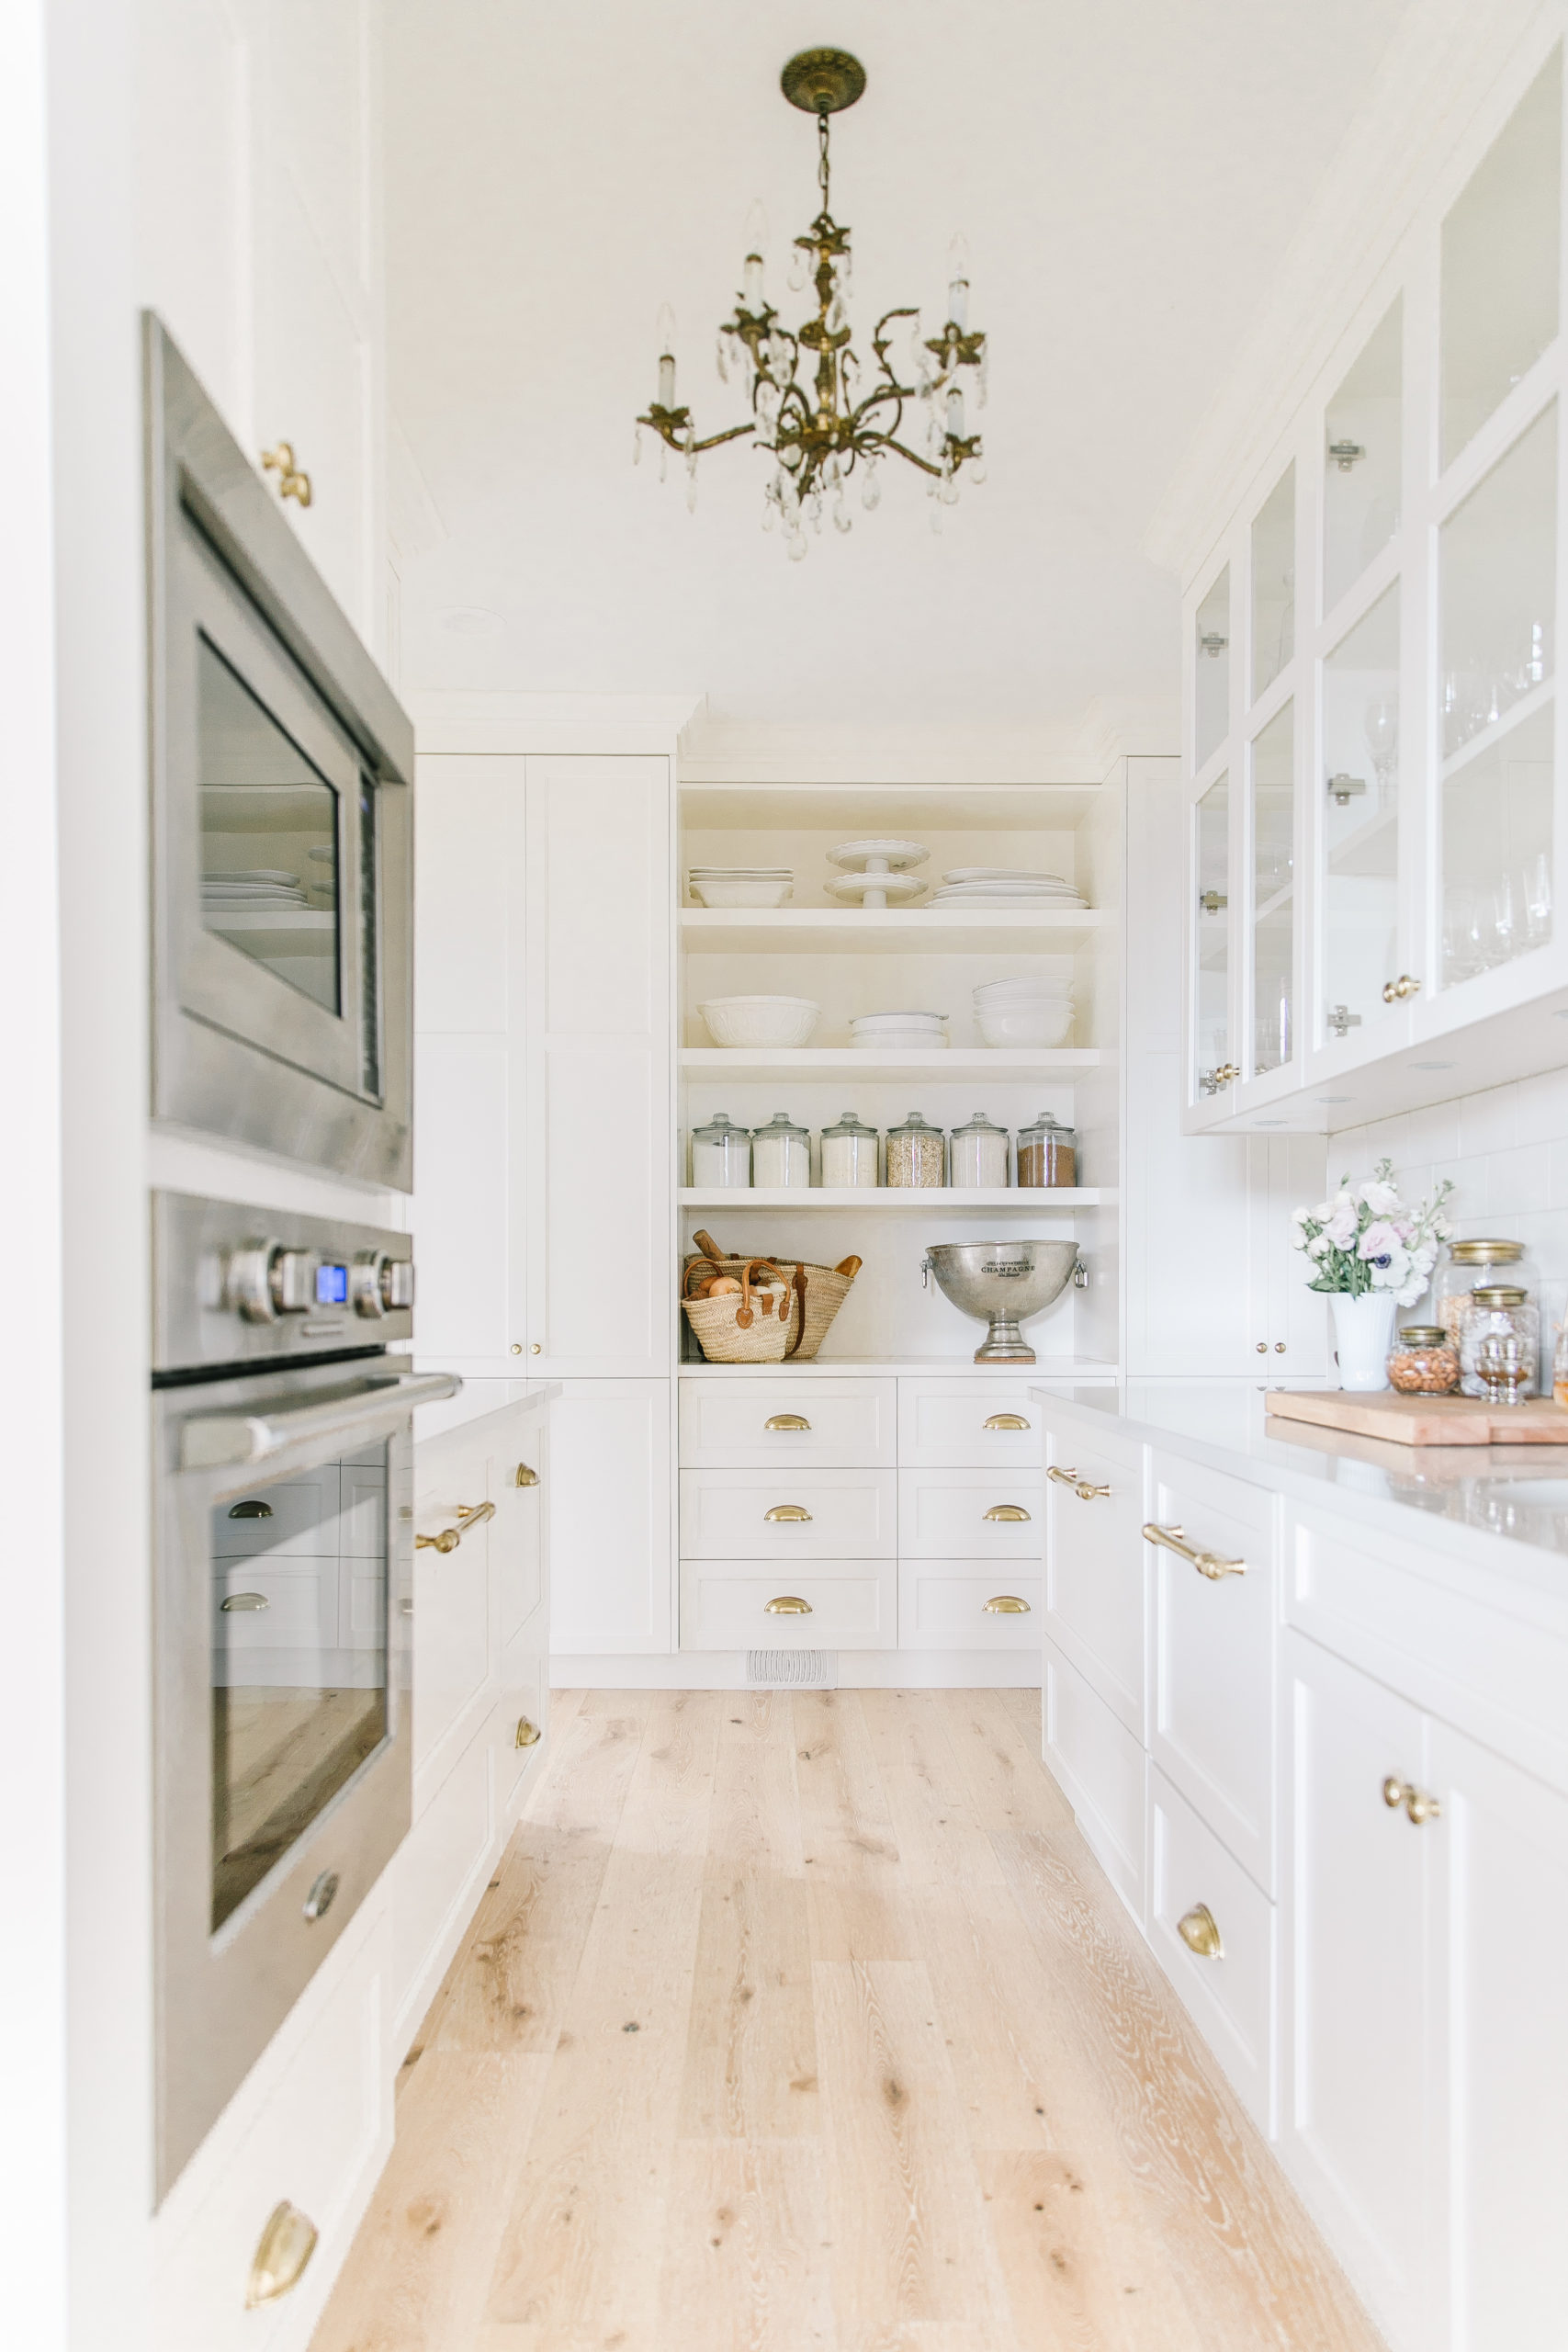 We're revealing our Pantry design and how we've organized everything! We found inspiration in so many things and are so happy with how it's all come together!